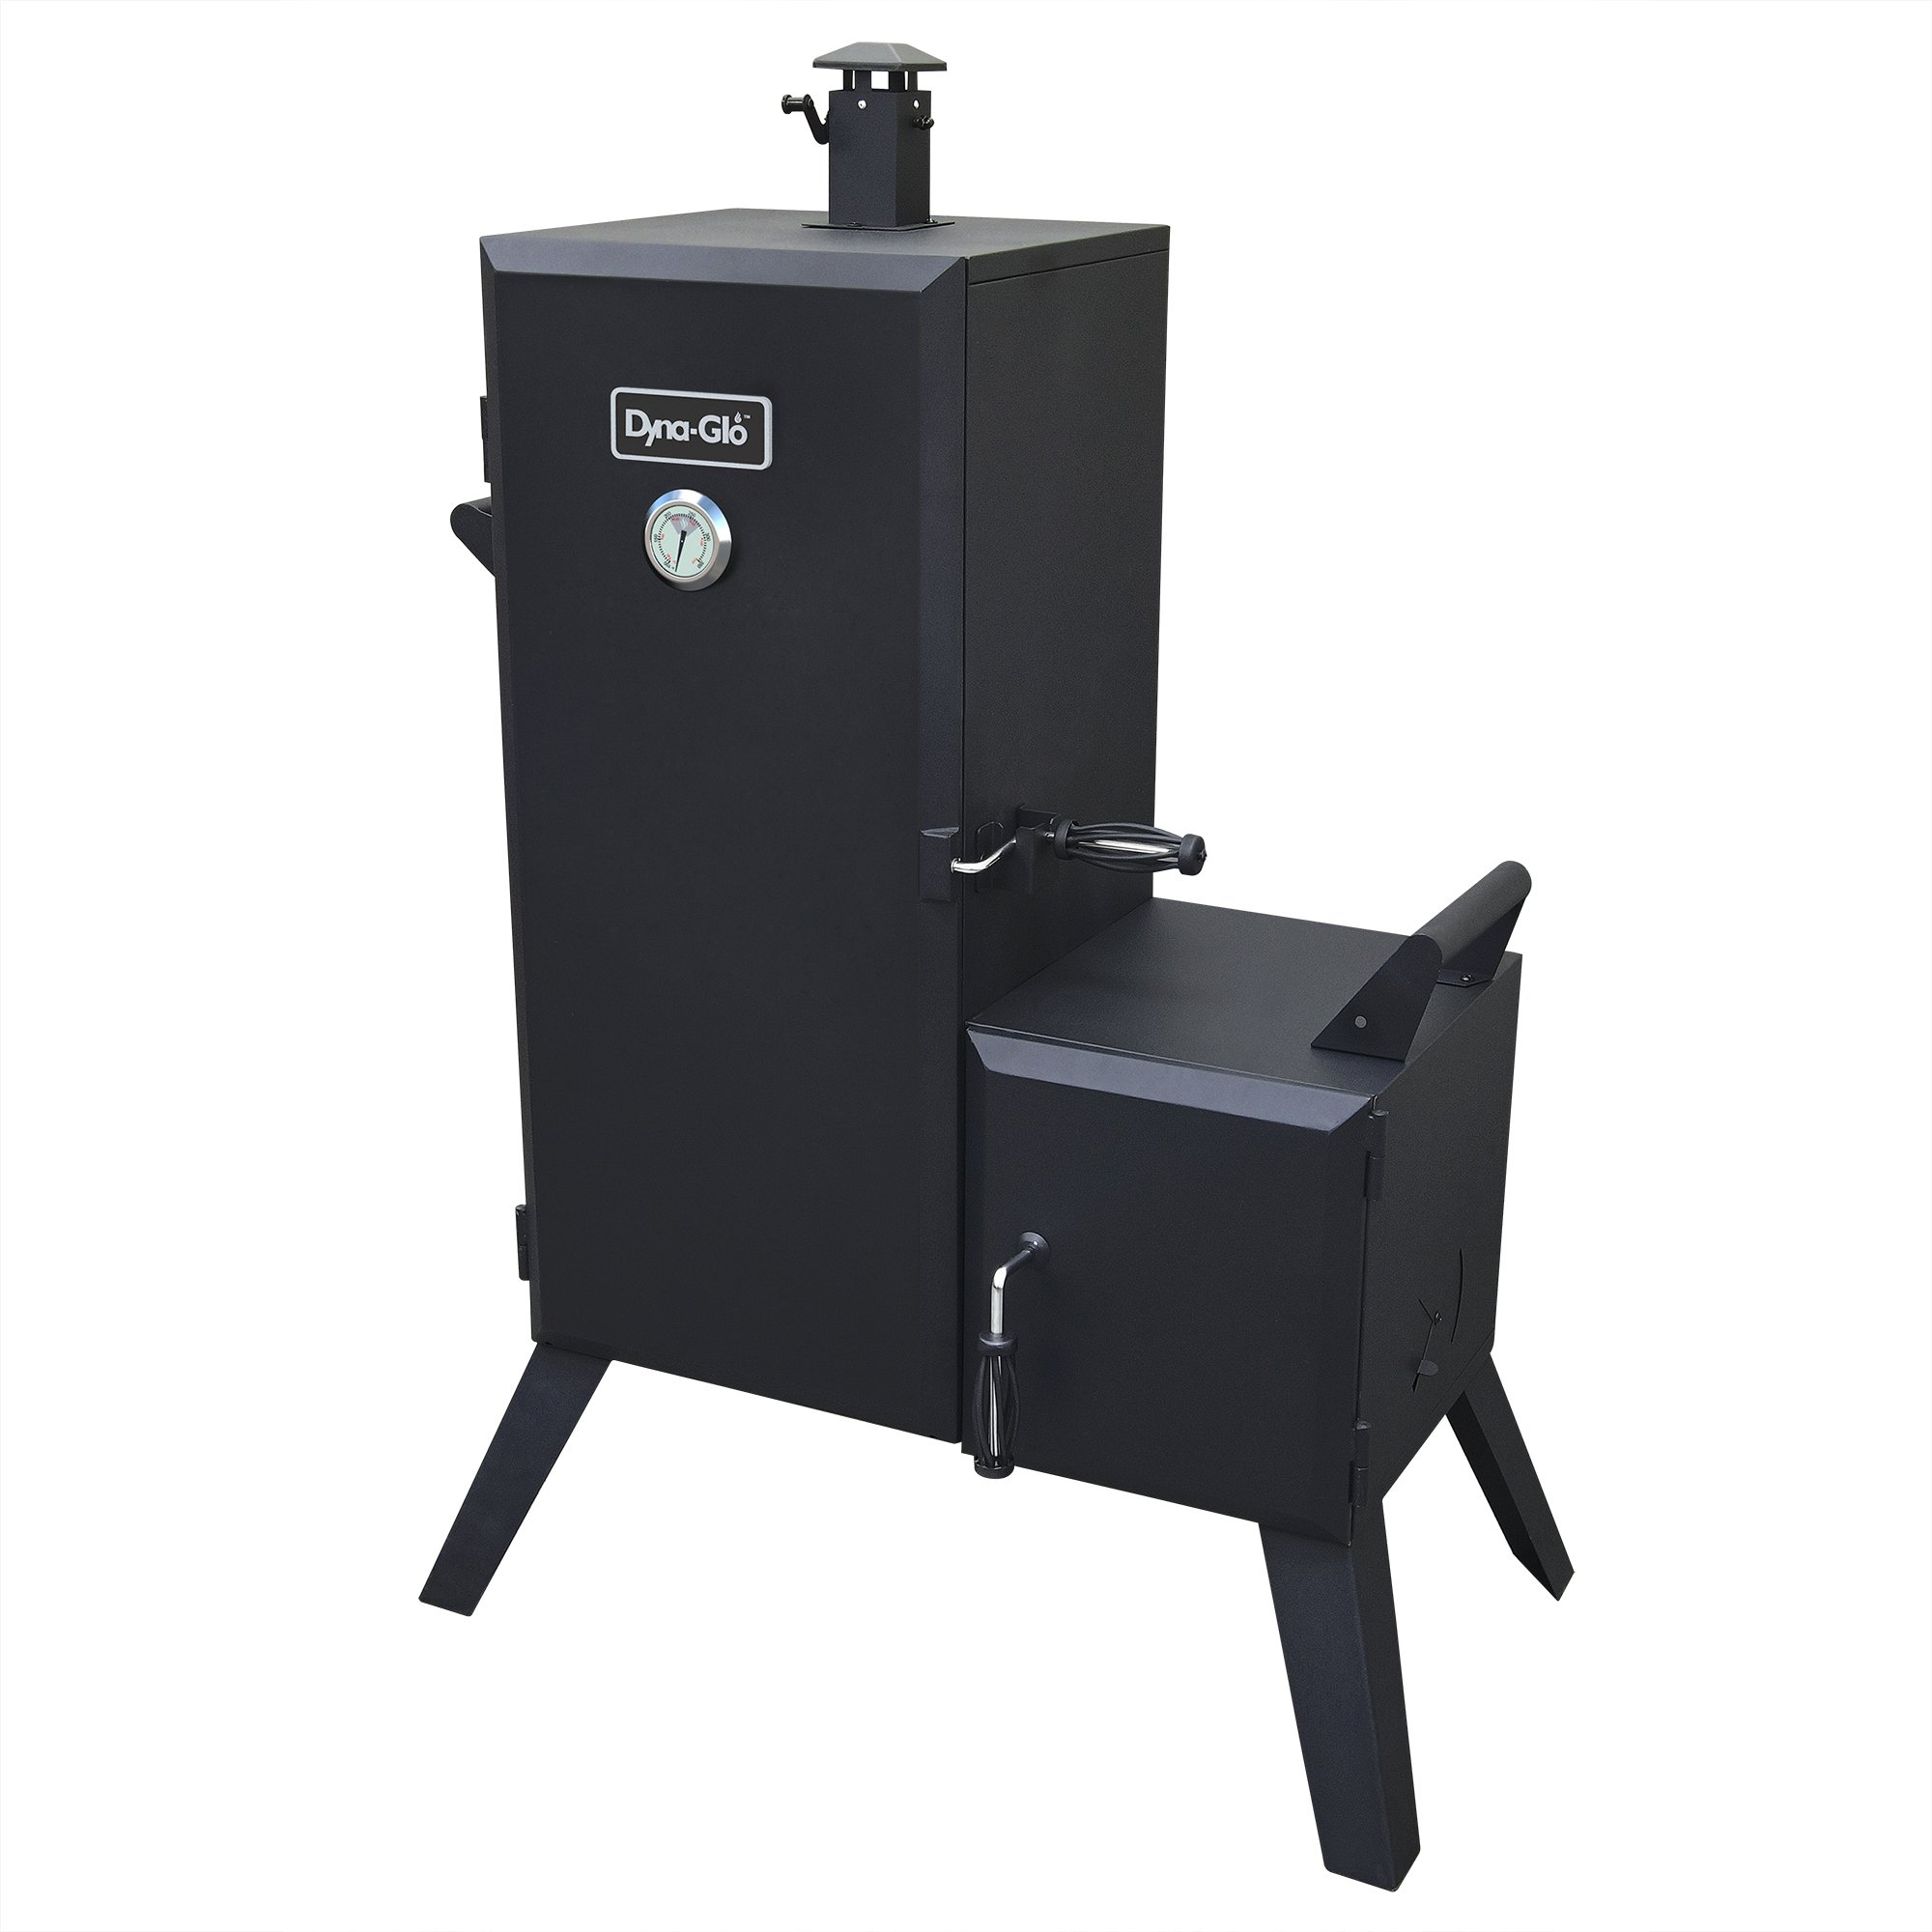 Dyna-Glo DGO1176BDC-D Charcoal Offset Smoker by Dyna-Glo